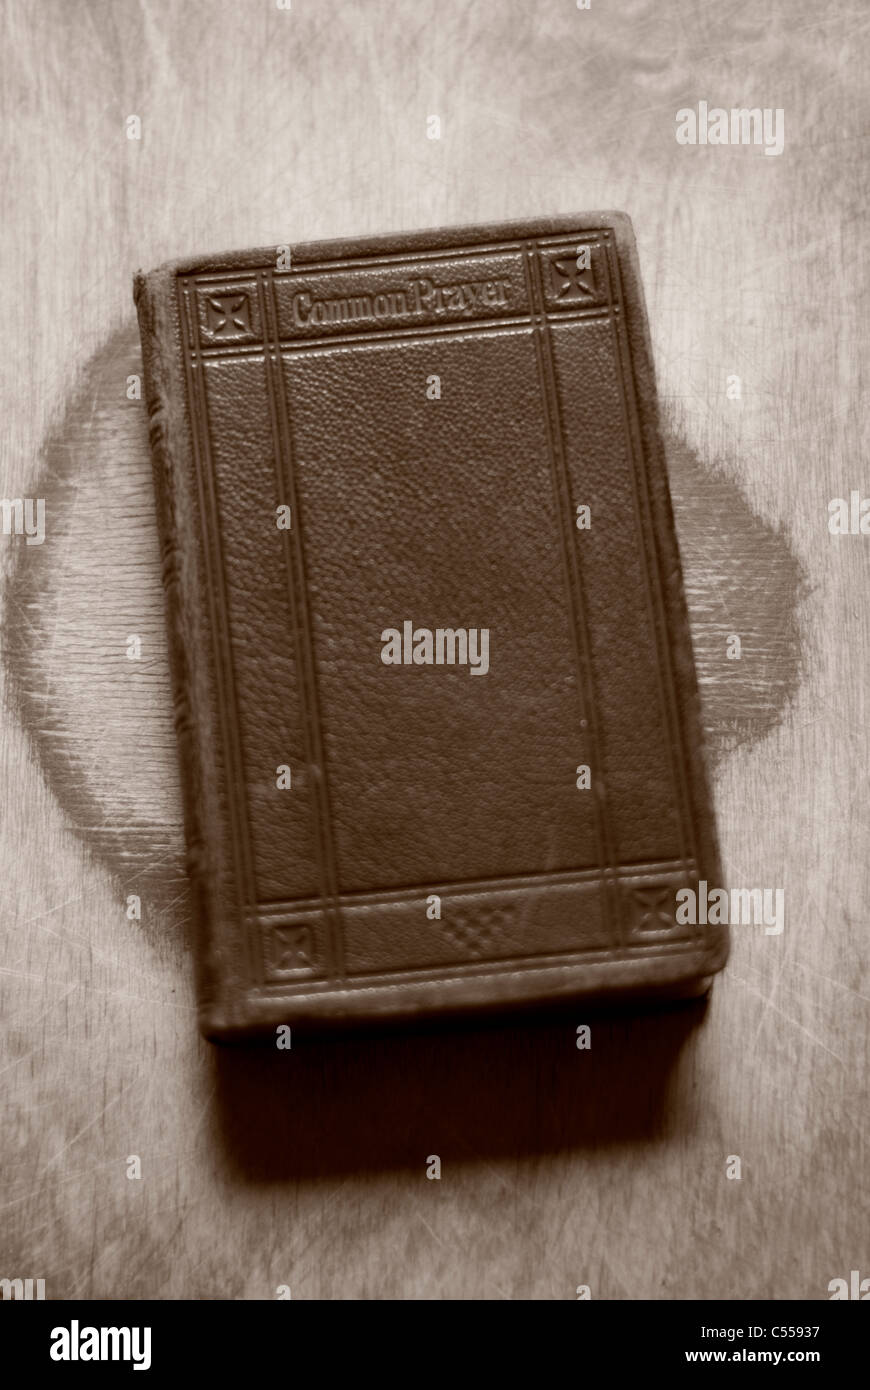 Old common prayer book - Stock Image